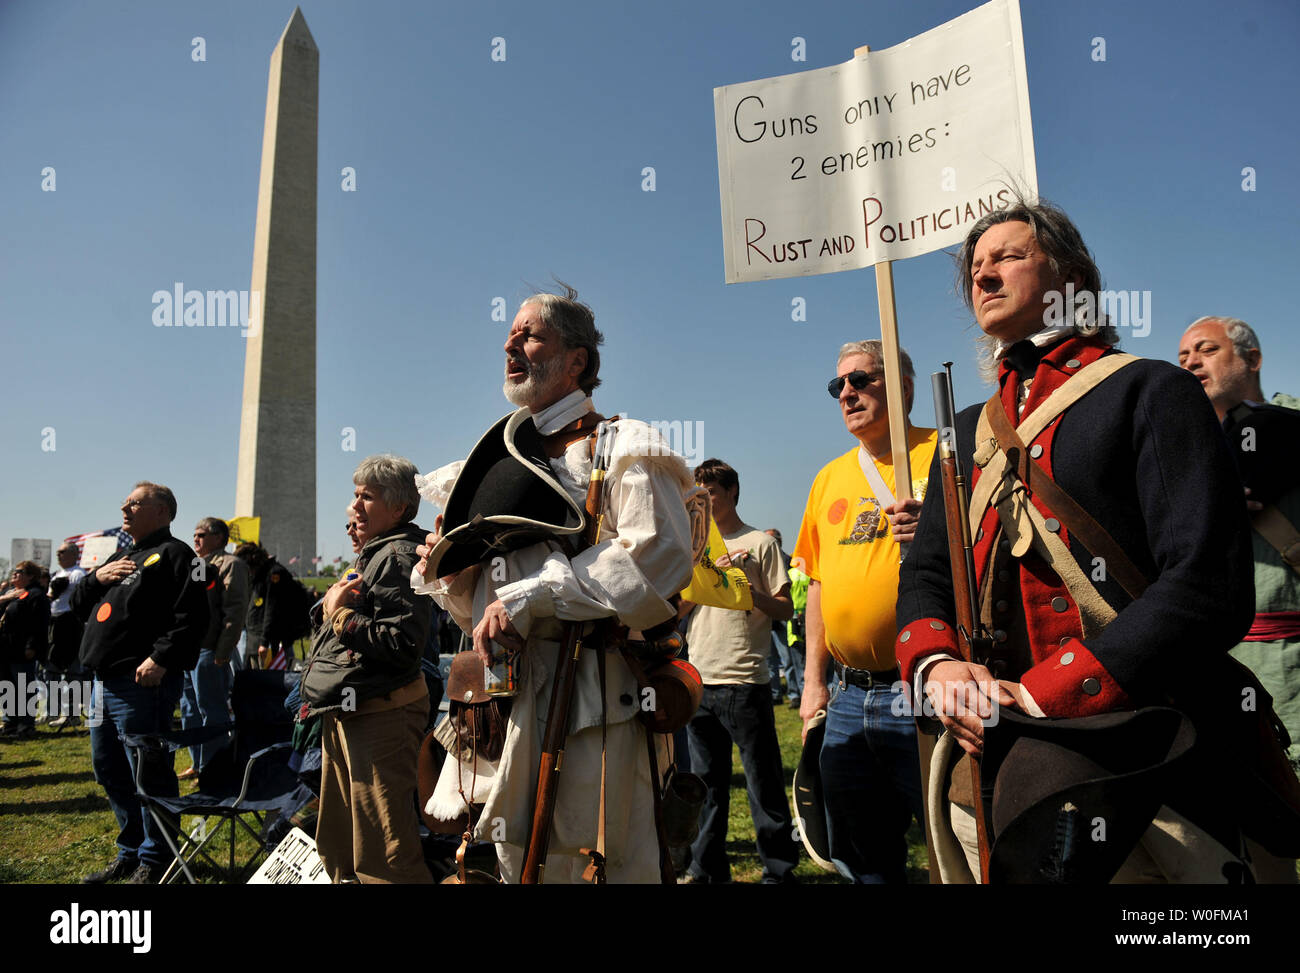 People dressed as Minutemen from the Revolutionary War attend a second amendment rally on the grounds of the Washington Monument, in Washington on April 19, 2010. Pro-gun rallys where held around the country today, also known as Patriots' Day, the anniversary of the American Revolutionary War battles of Lexington and Concord and the Oklahoma City bombing.    UPI/Kevin Dietsch. Stock Photo